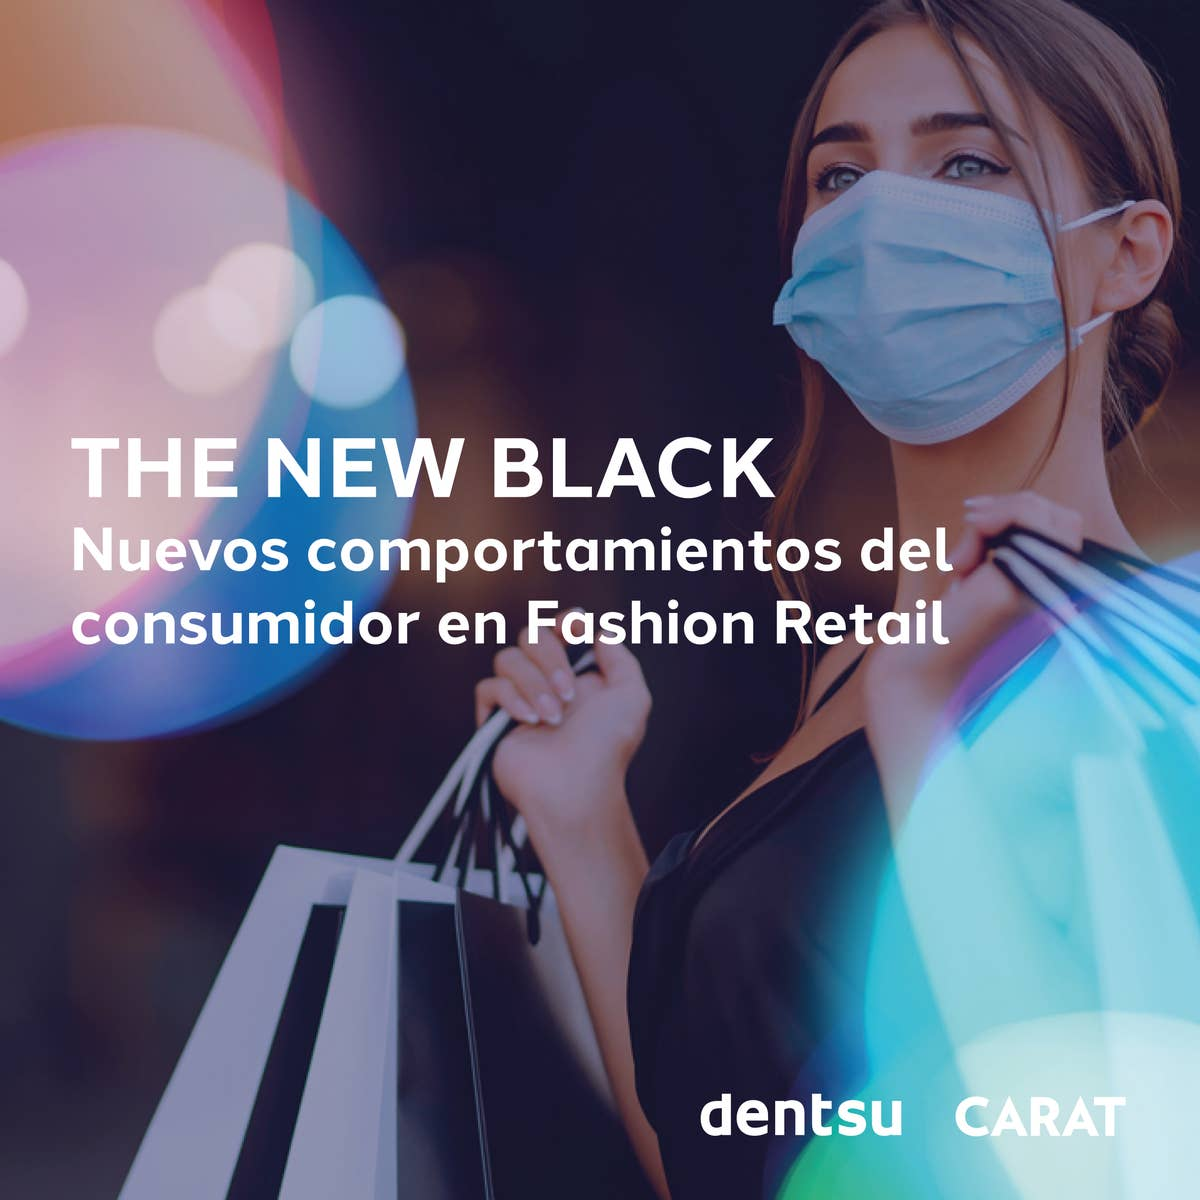 THE NEW BLACK: Nuevos comportamientos del consumidor en Fashion Retail